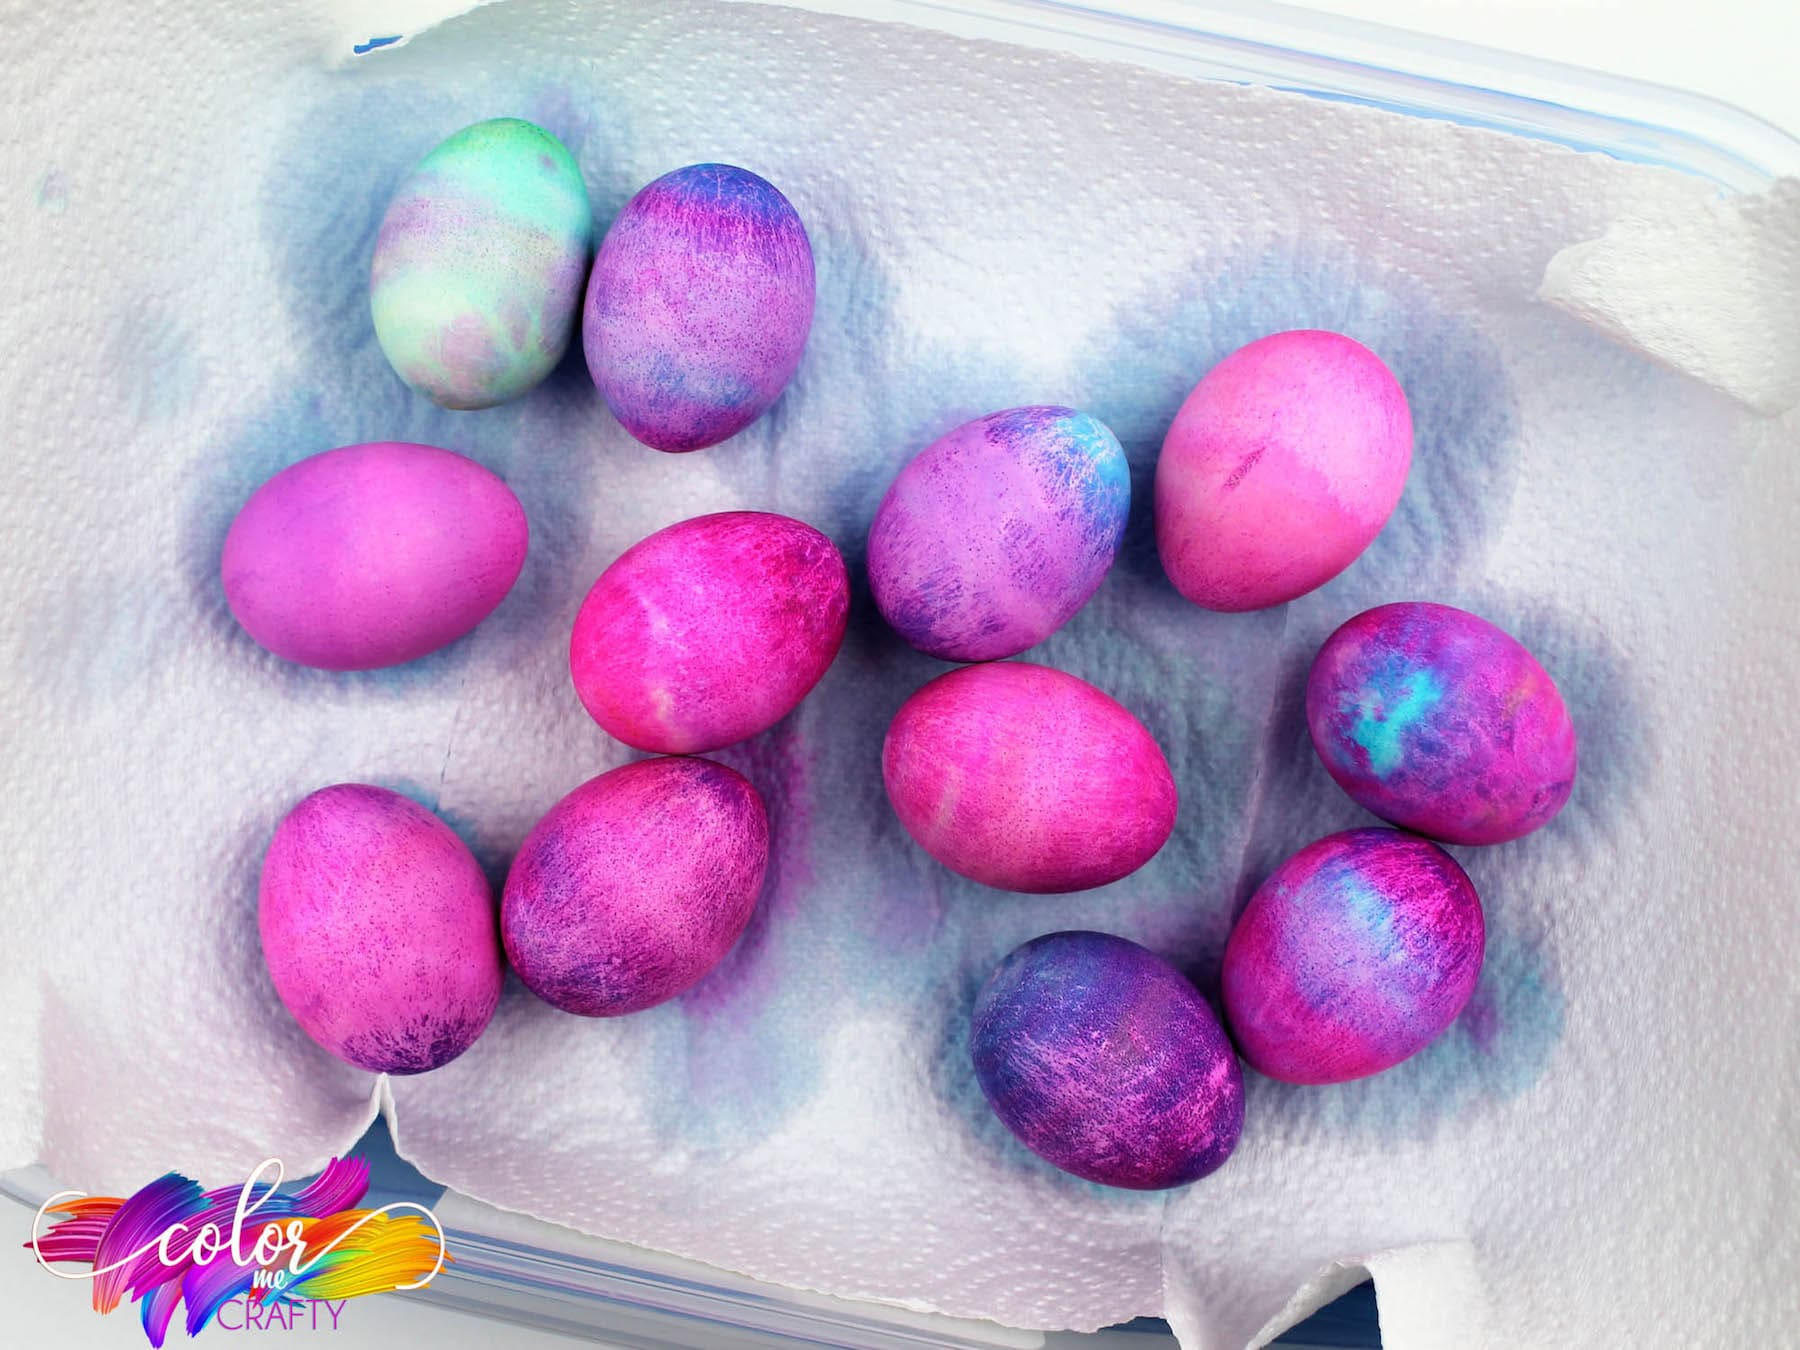 shaving cream dyed easter eggs on a paper towel